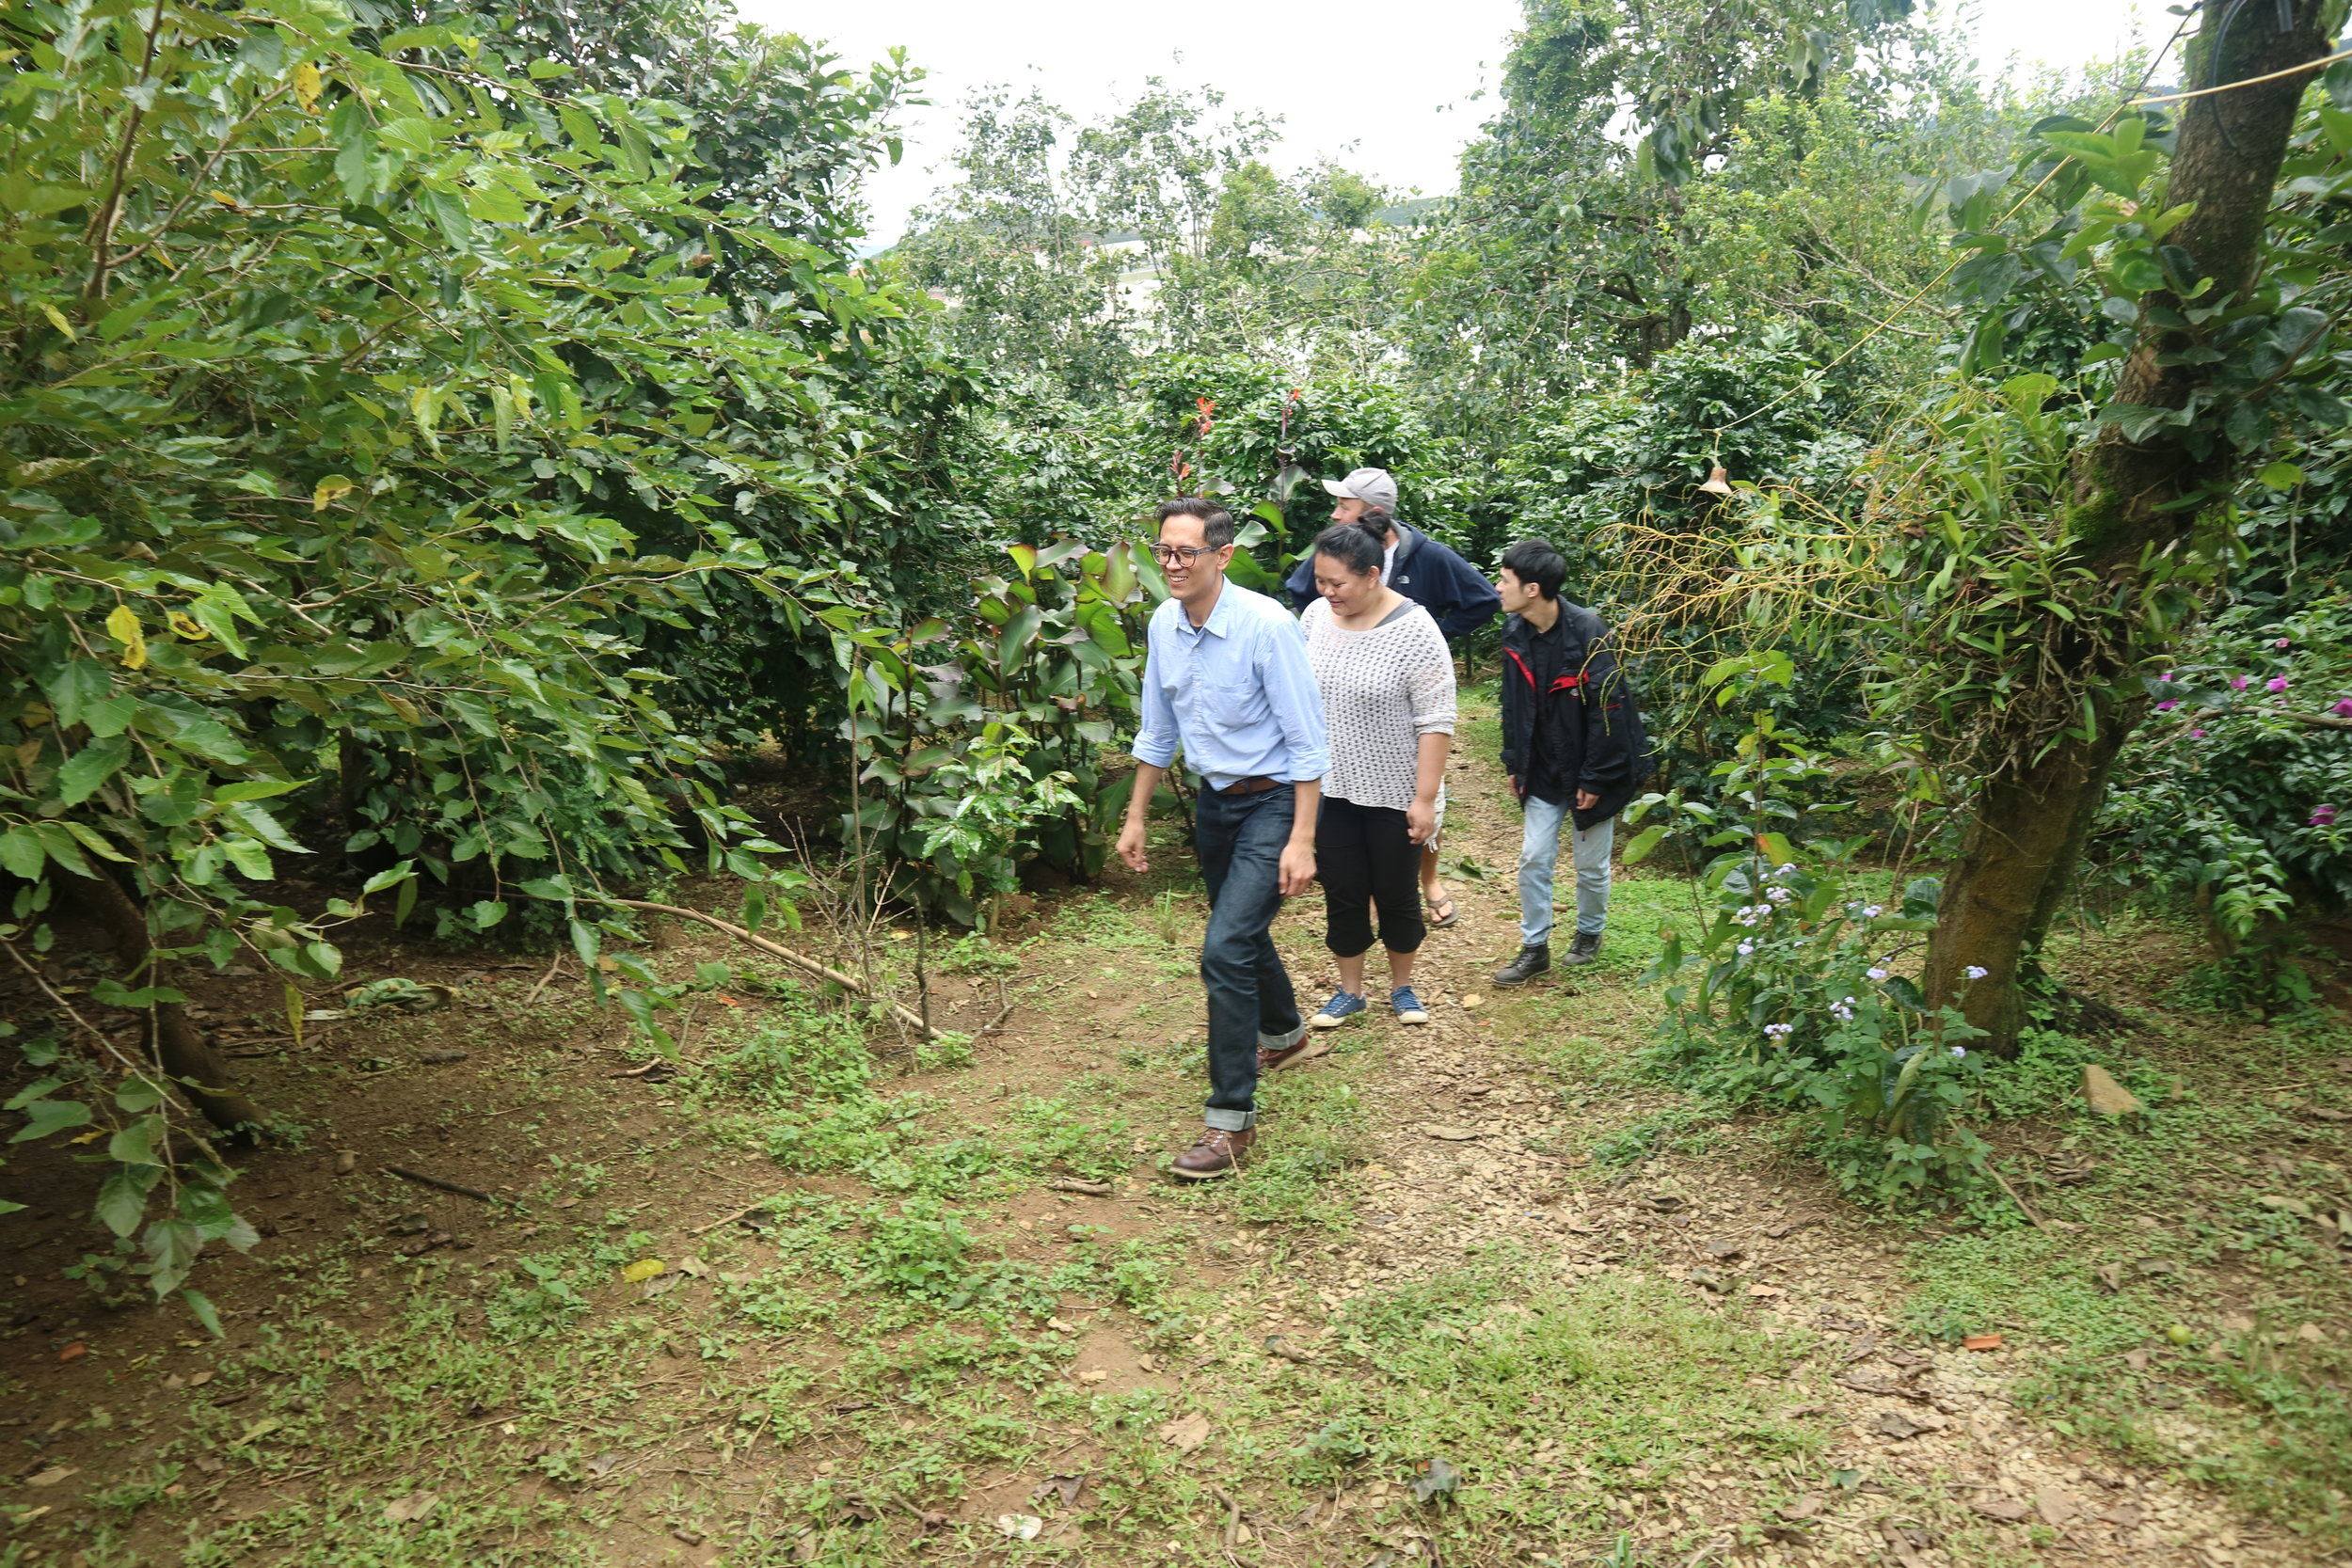 The trek from the street to the cafe takes guests through the coffee garden, which had chickens and little pigs running around (too quickly for the camera!).